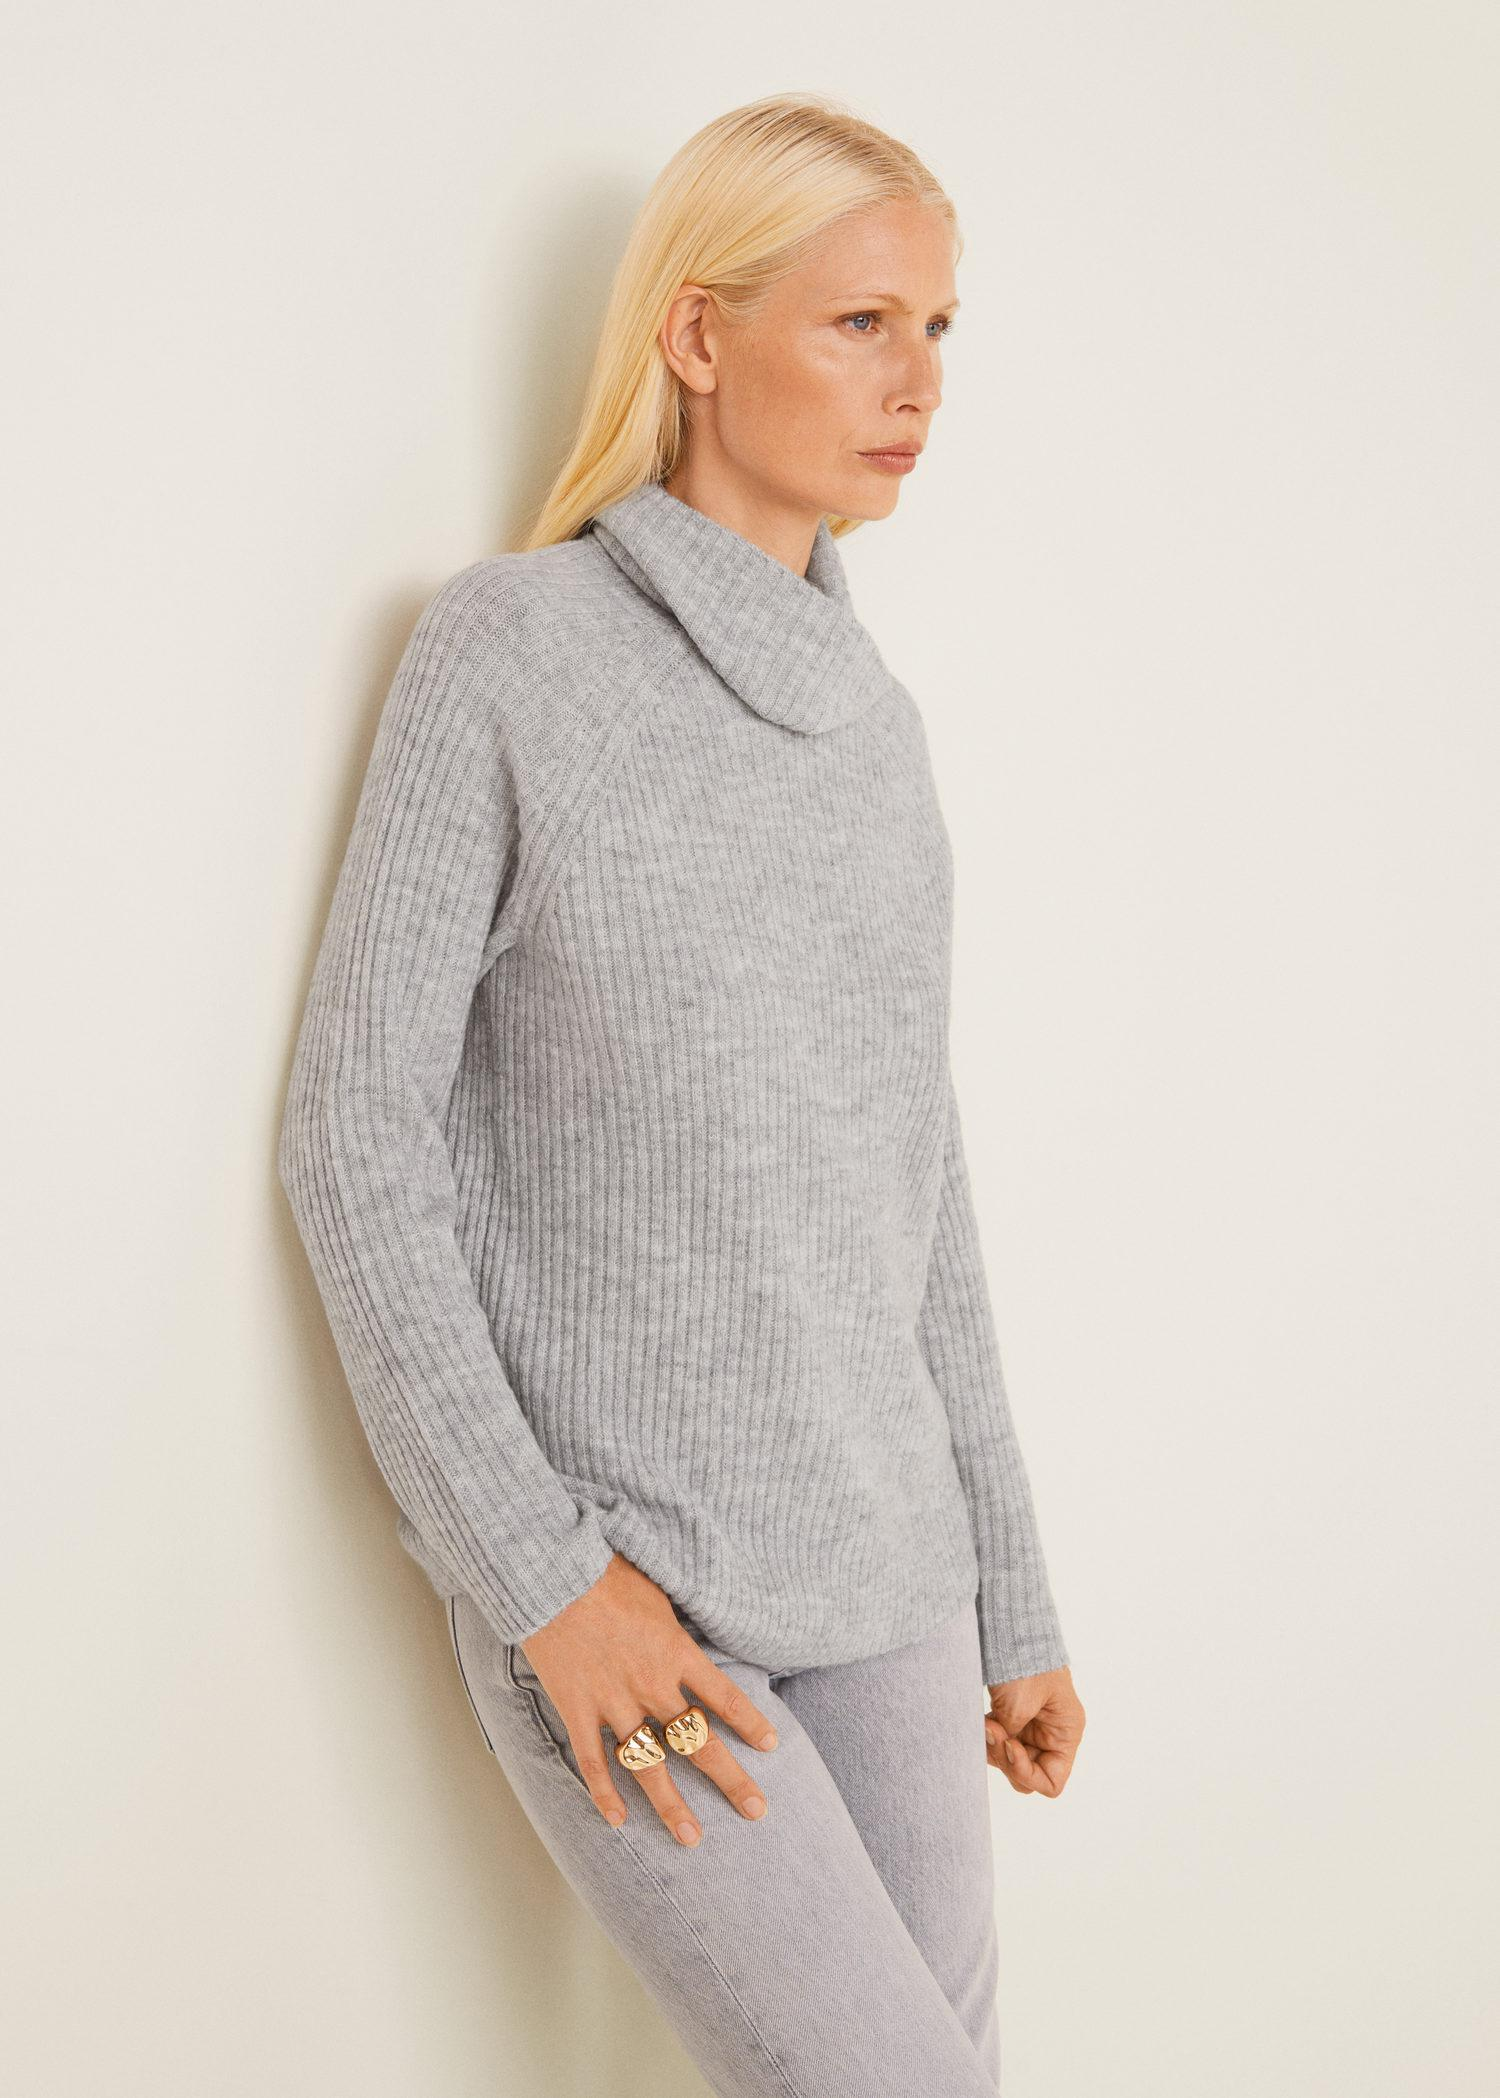 Sweater Lyst In Mango Gray Ribbed Polyester Recycled gwx6gHq